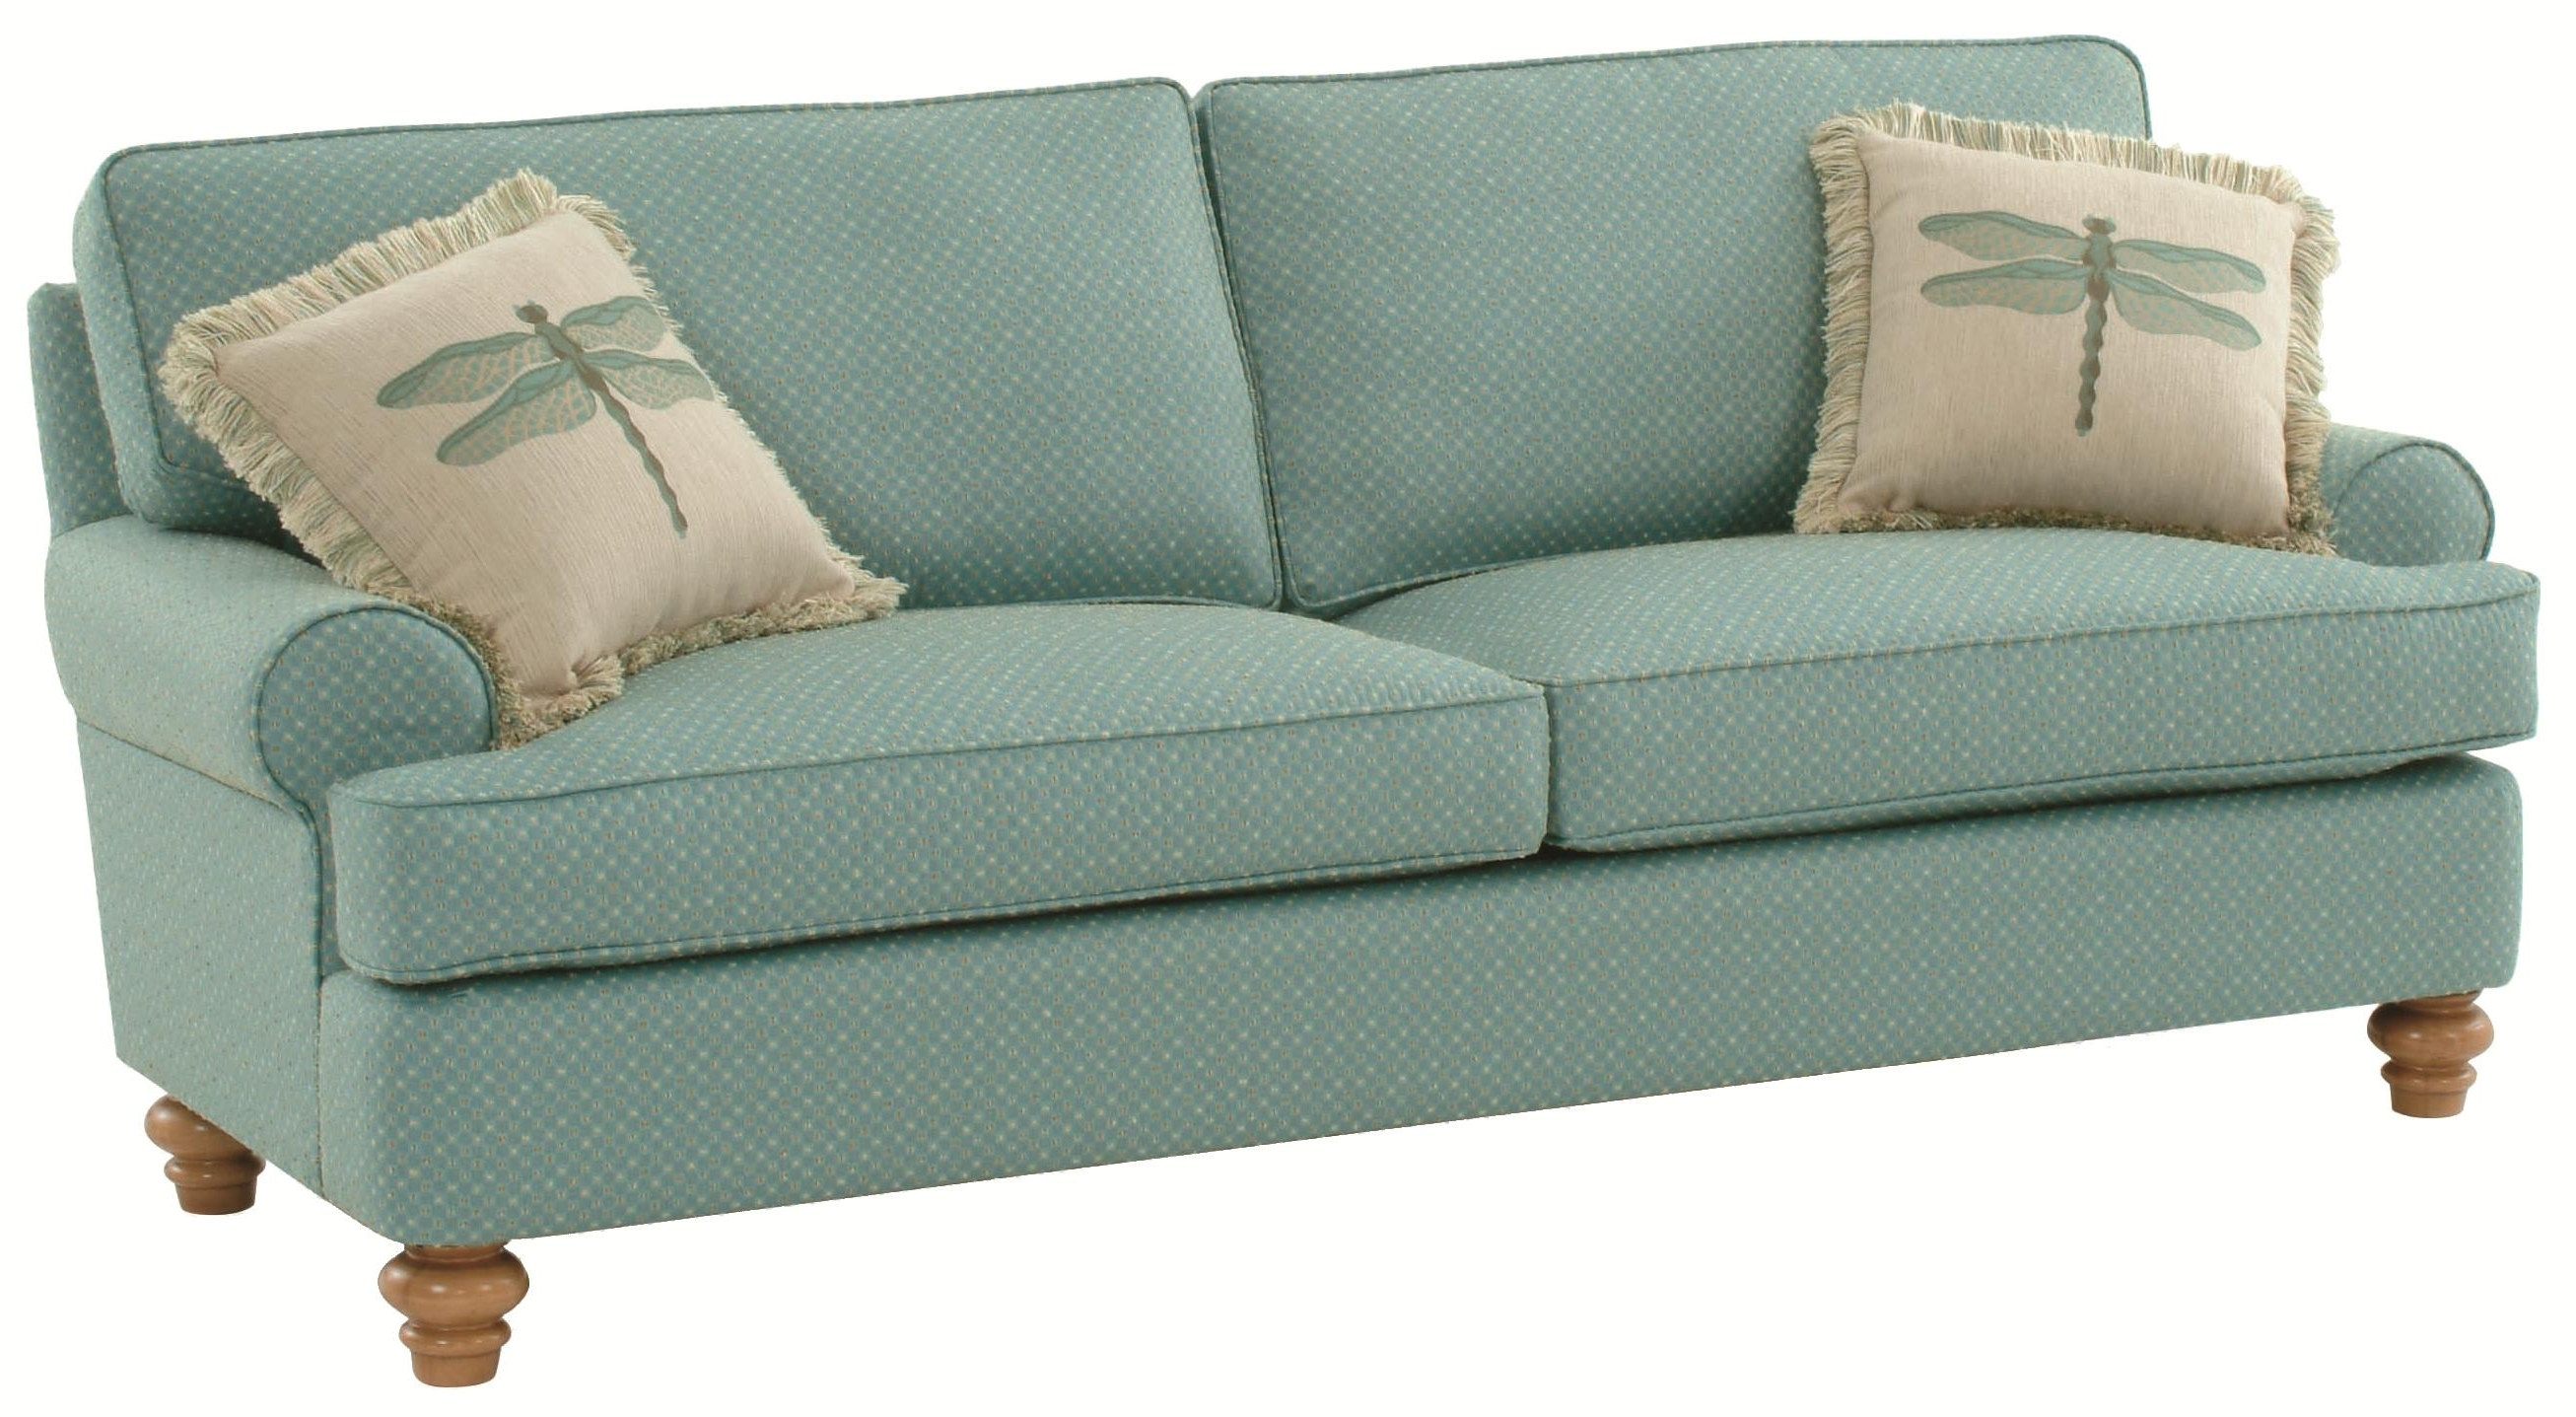 Well Liked Braxton Sofas Pertaining To Braxton Culler 773 Lowell Stationary Cottage Styled Sofa – Ahfa (View 20 of 20)